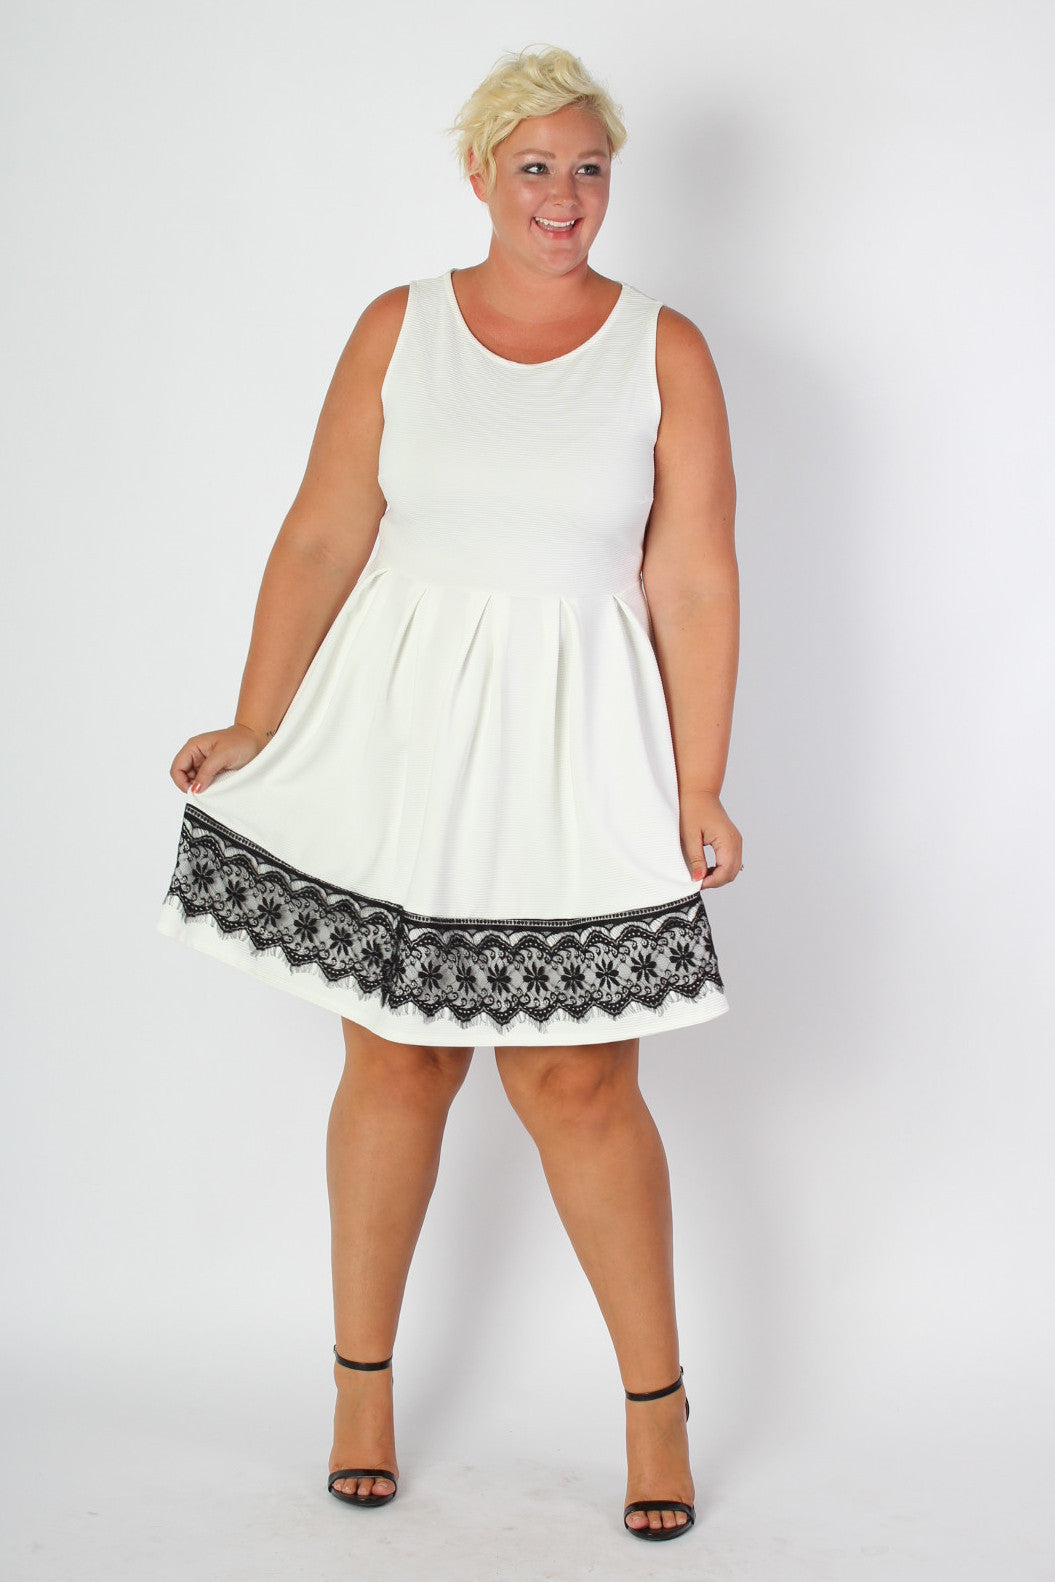 You like just a touch of refinement, a bit of lace that tells the world you are no ordinary babe. Our signature fit and flare silhouette is perfect for any body type. Made with a lightweight waffle fabric, you will be comfortable and confident in any situation! 92% Polyester 8% Spandex Hand Wash Cold Water Made in USA Size Bust Waist Hips Length Arm Hole Sweep 14/16 40